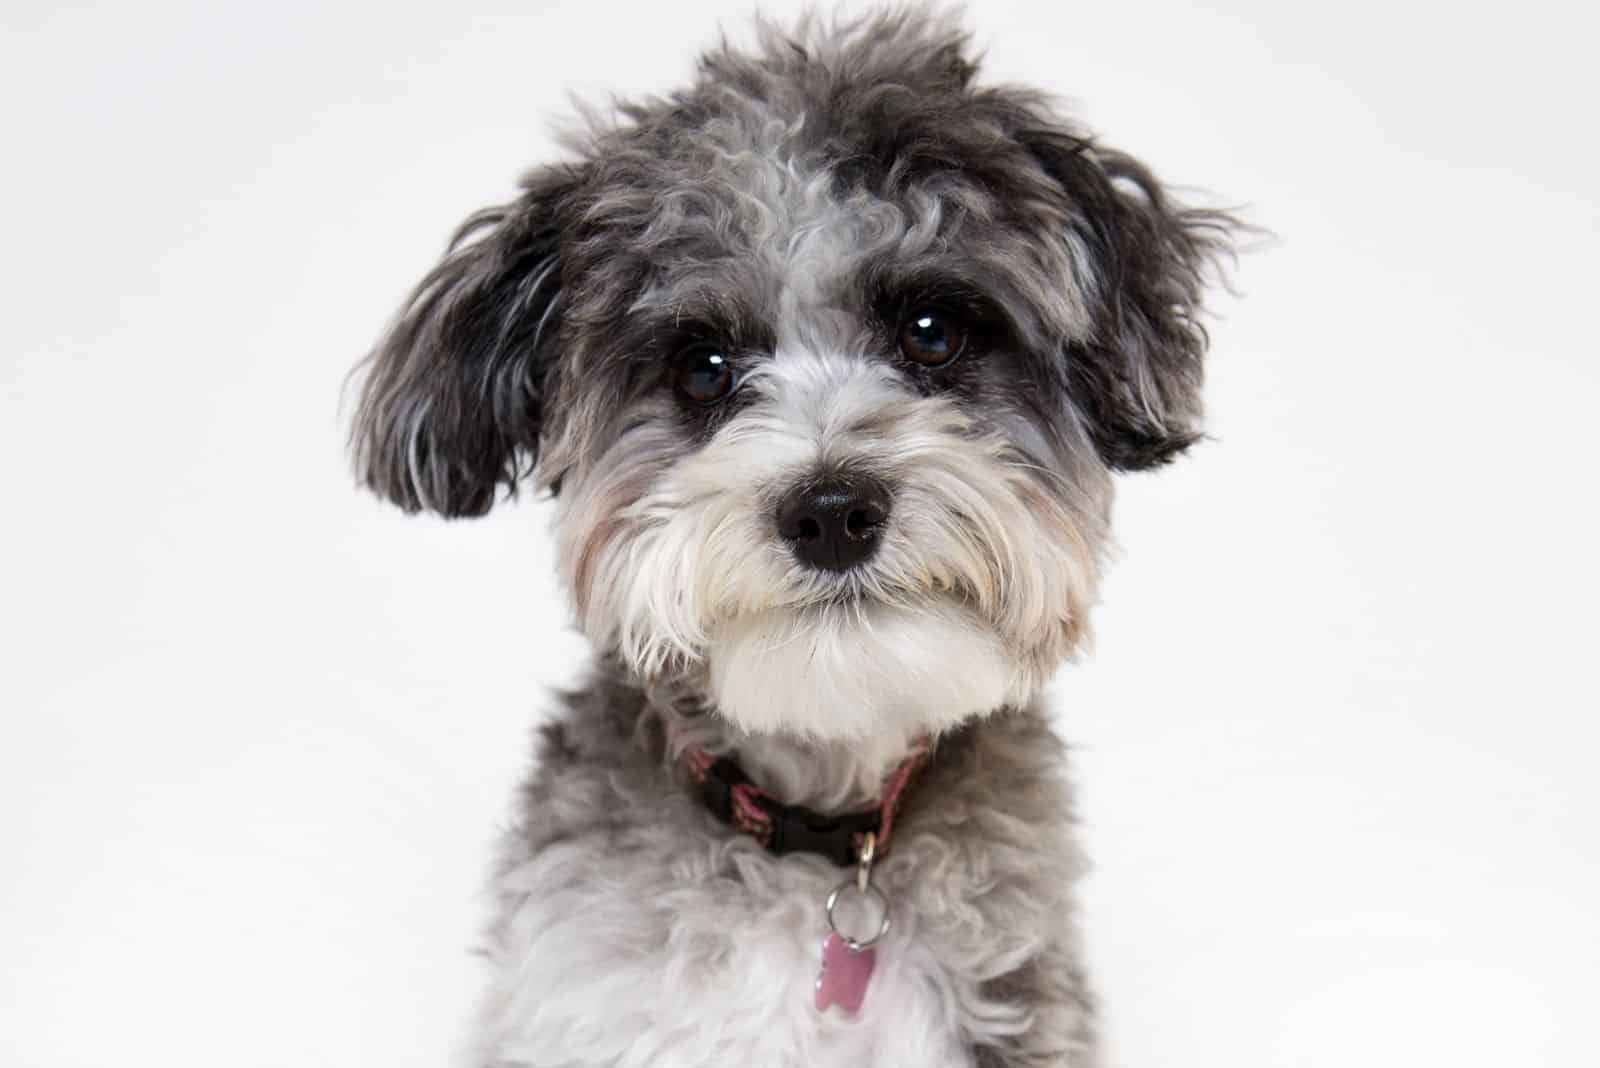 aussie merle poodle looking at the camera in white background